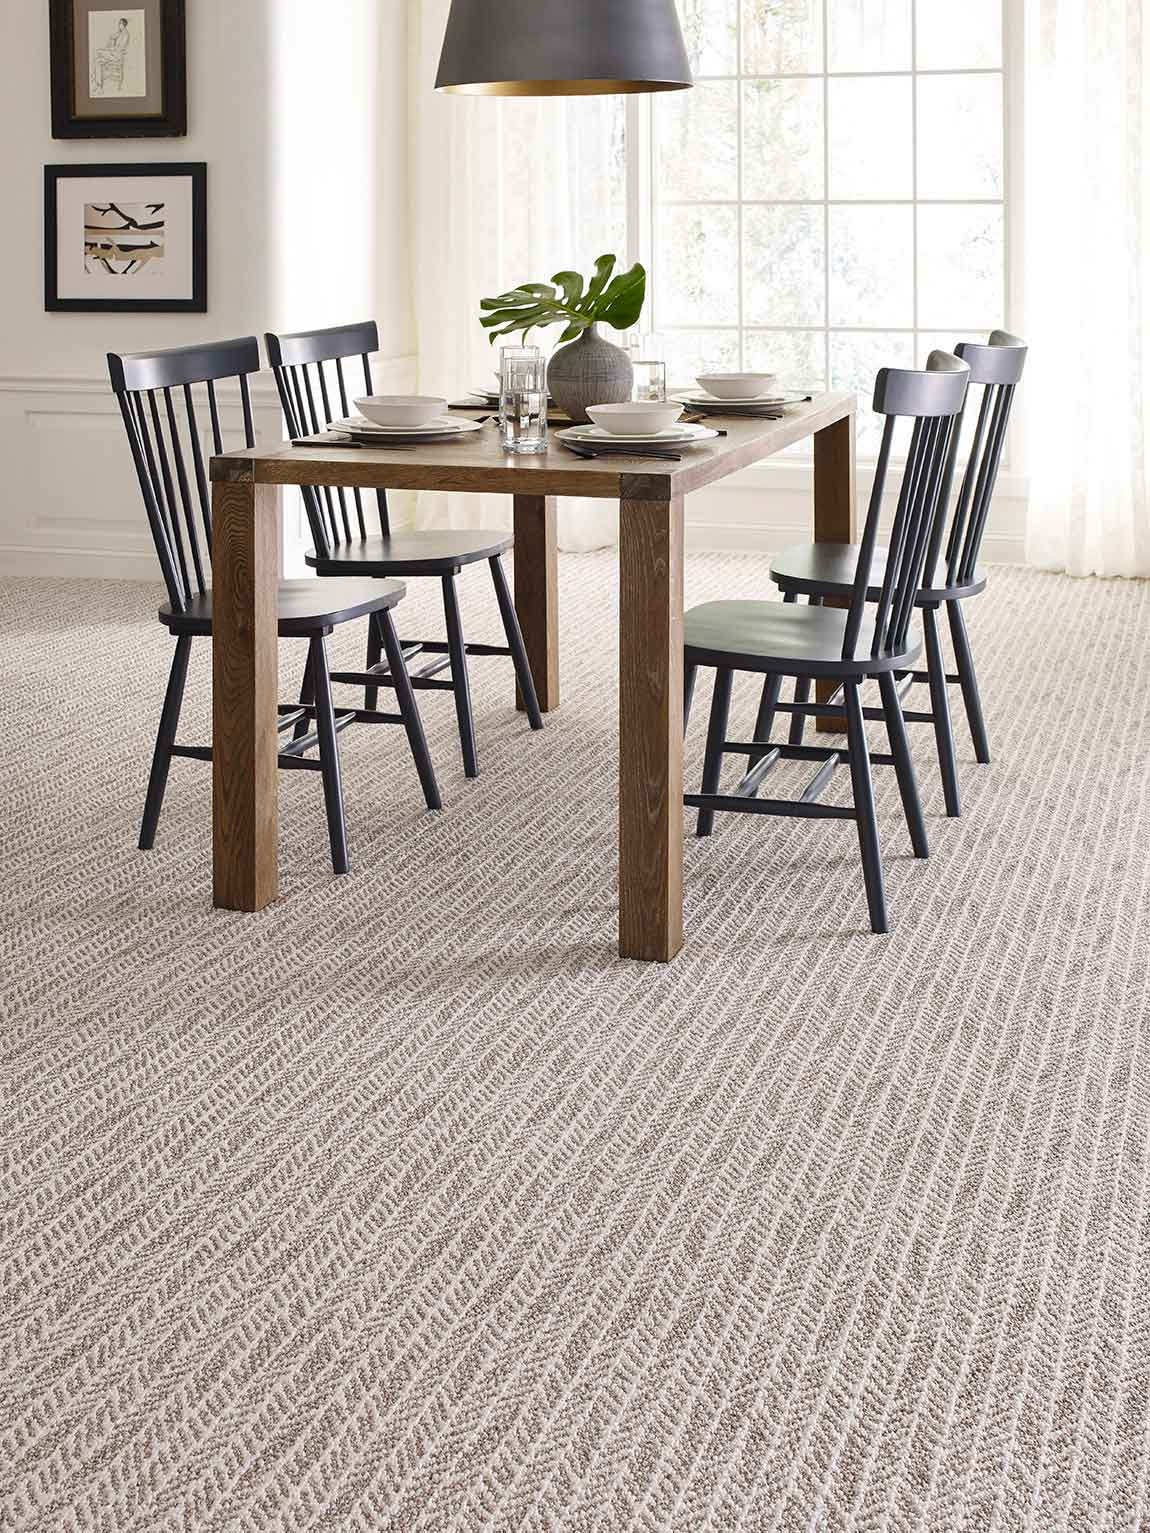 Rustic Farmhouse Dining Room Tone On Pattern Carpet